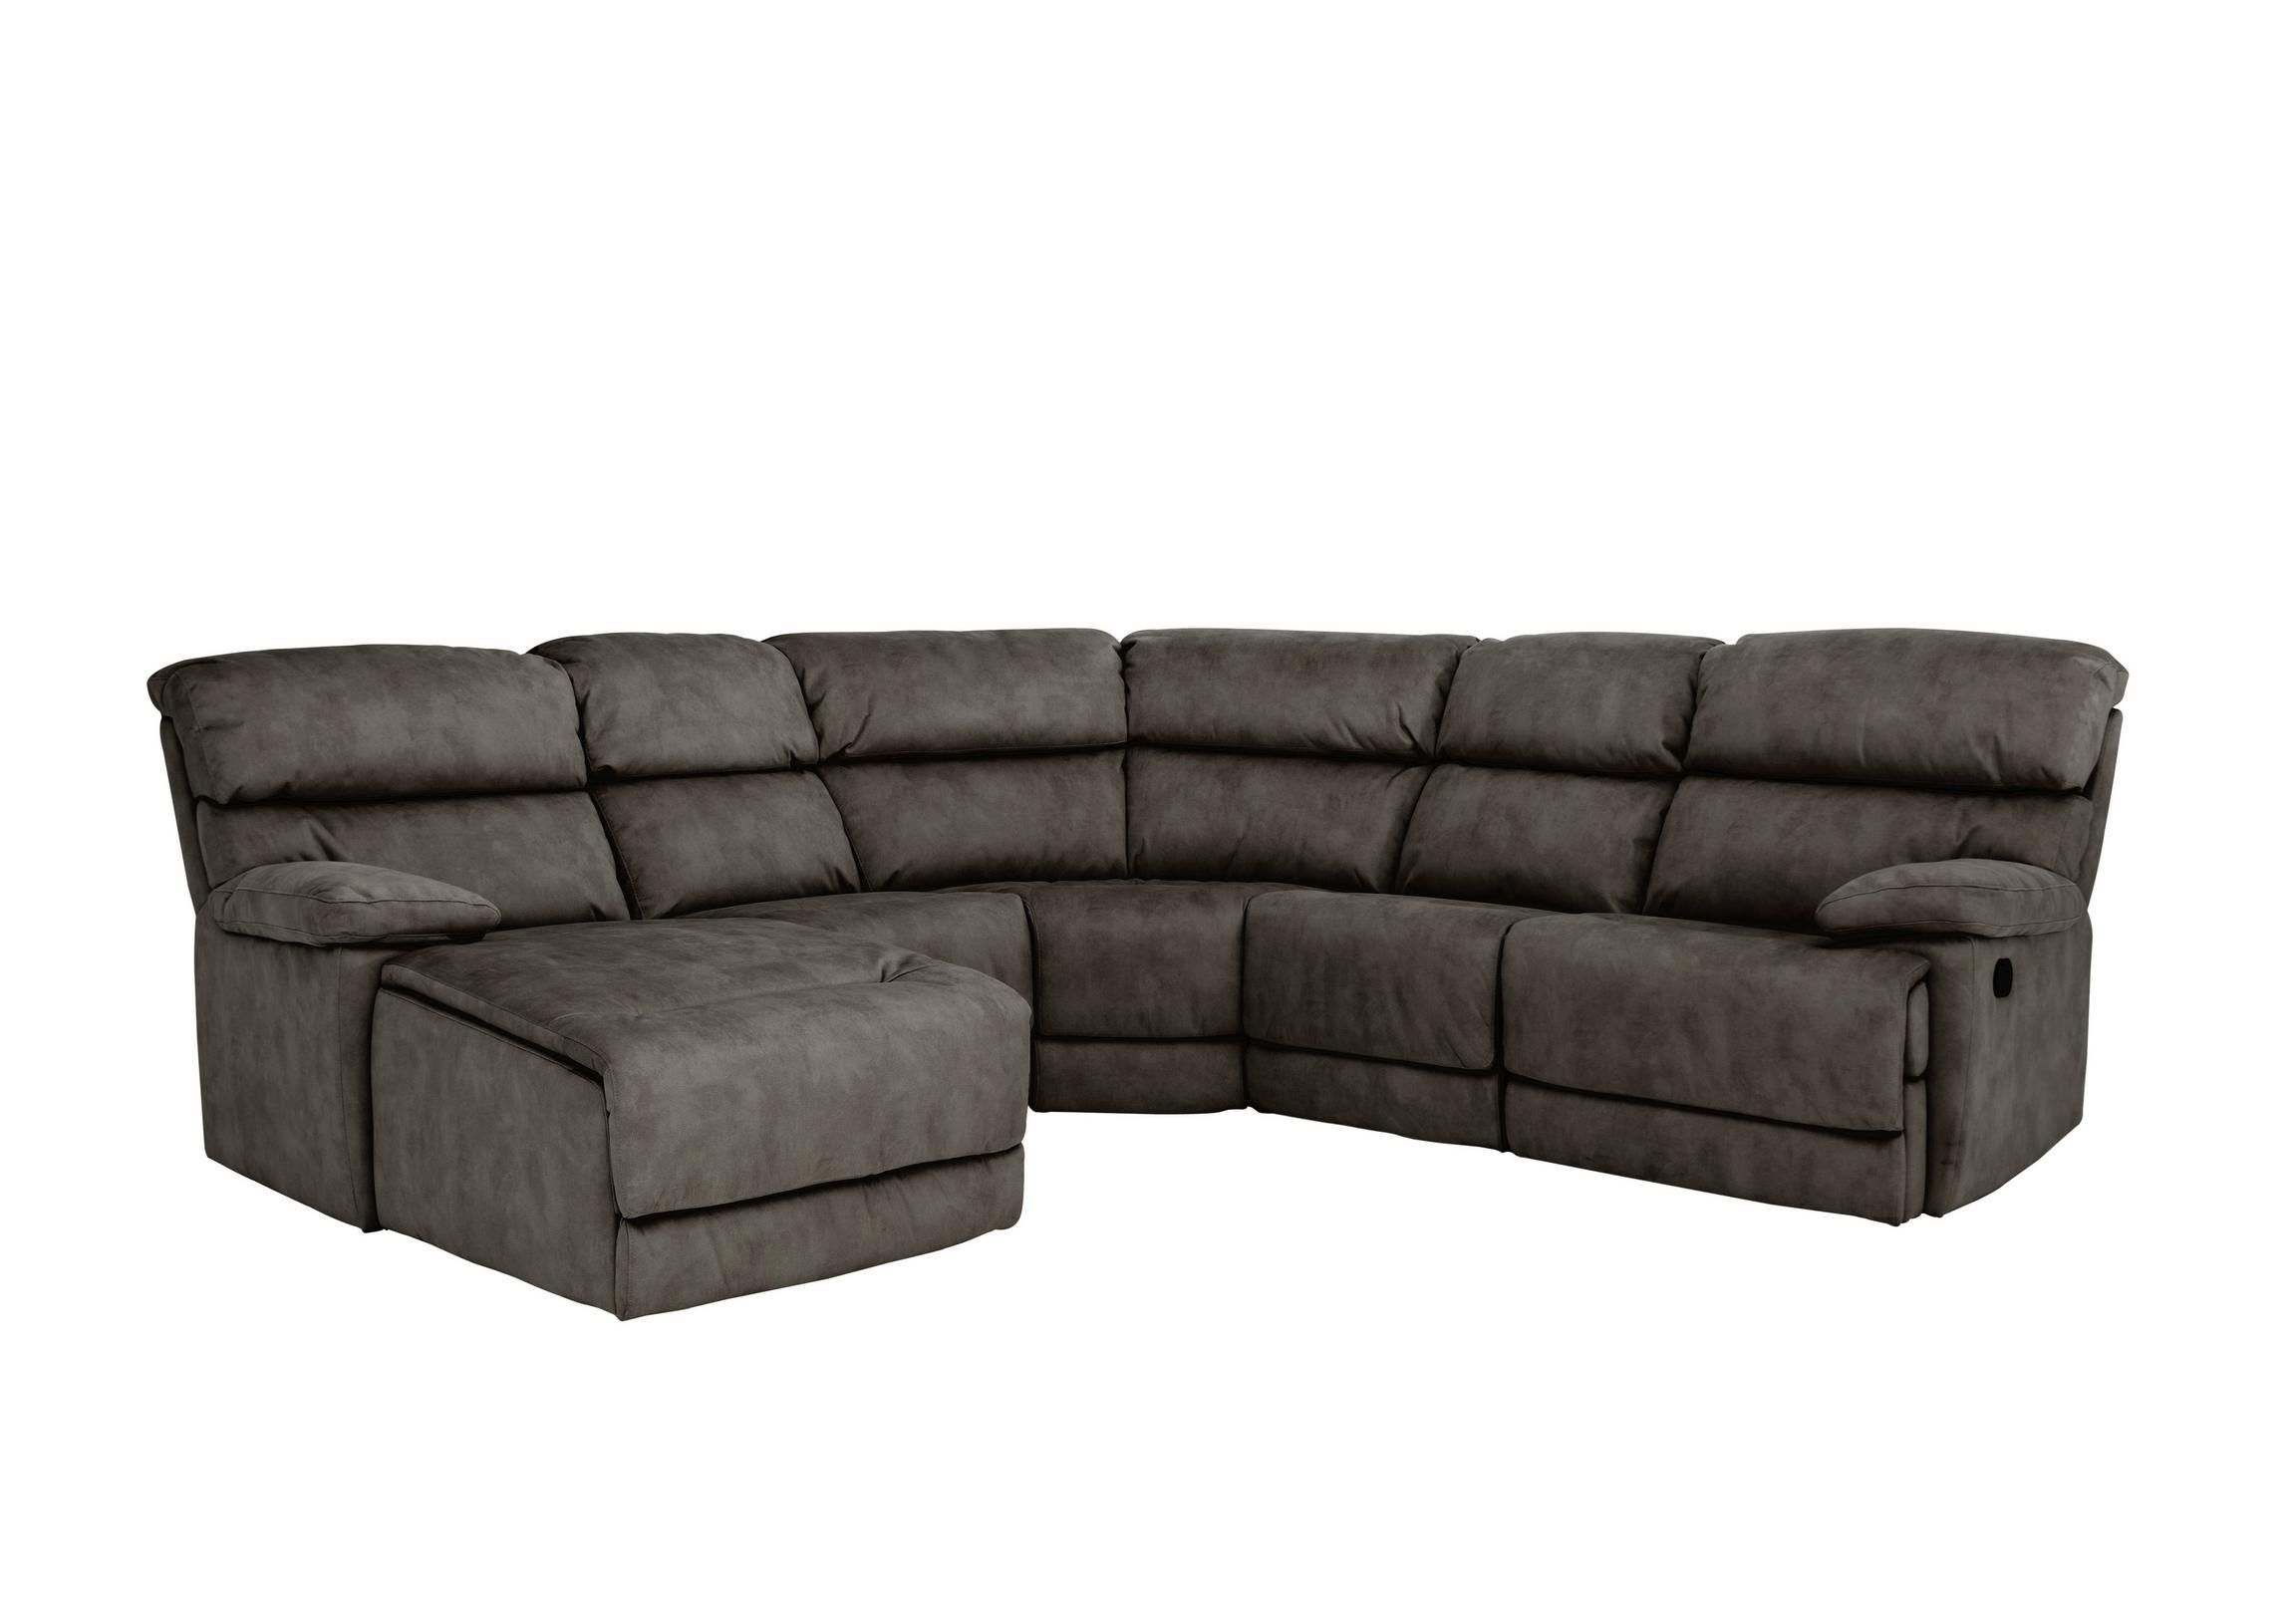 Popular Contempo Power Reclining Sofas In Beautifully Cushioned Fabric Corner Sofa Seats At Least  (View 10 of 20)